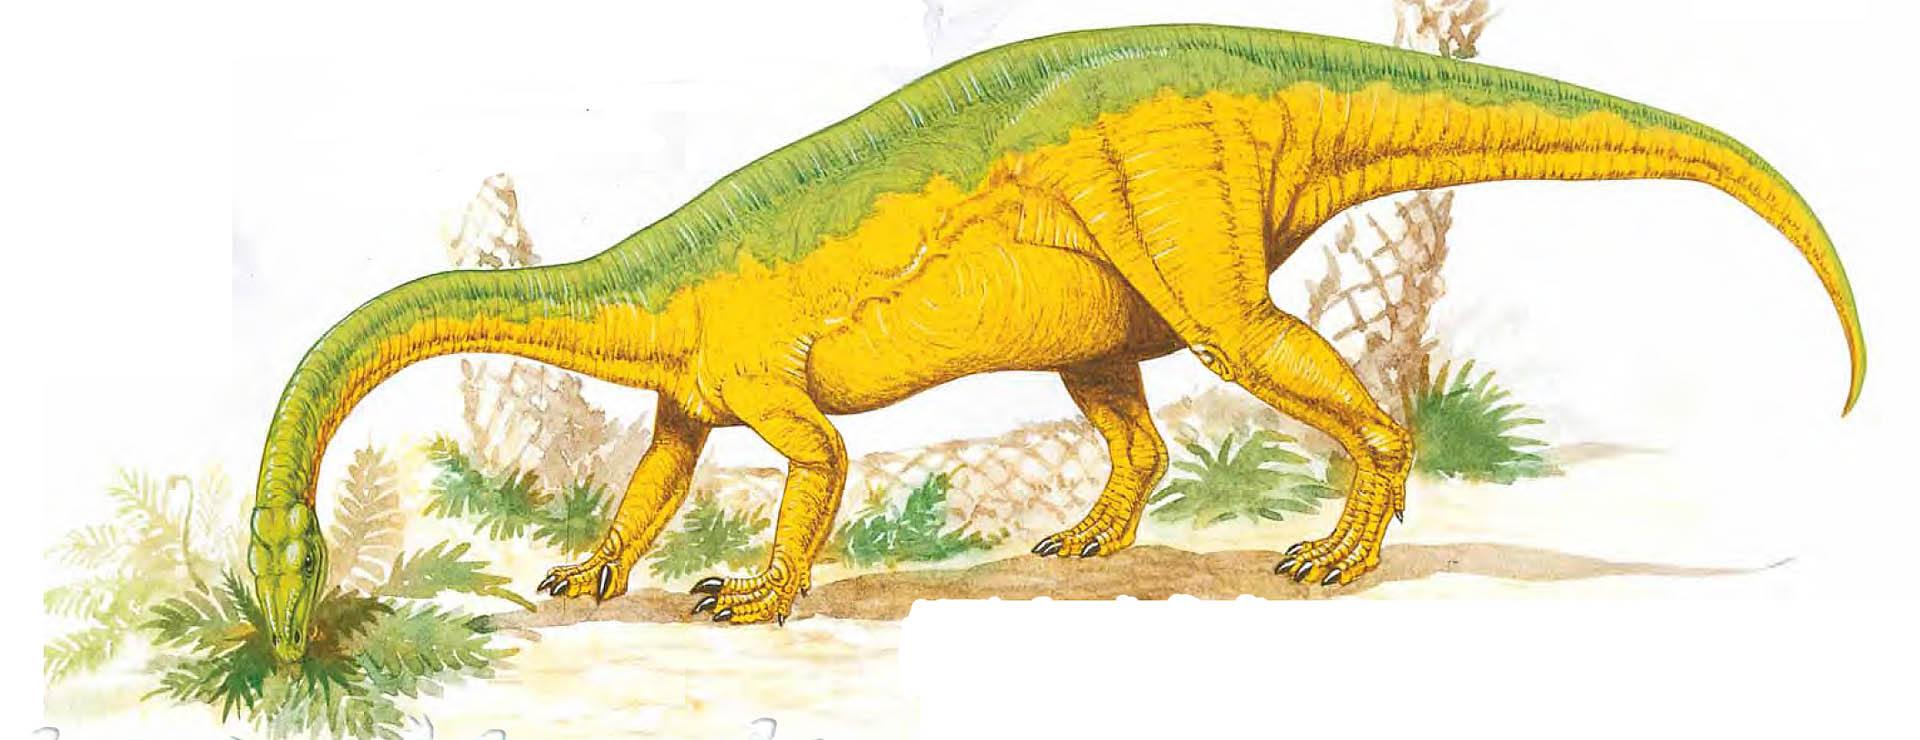 Anchisaurus Eating Vegetation